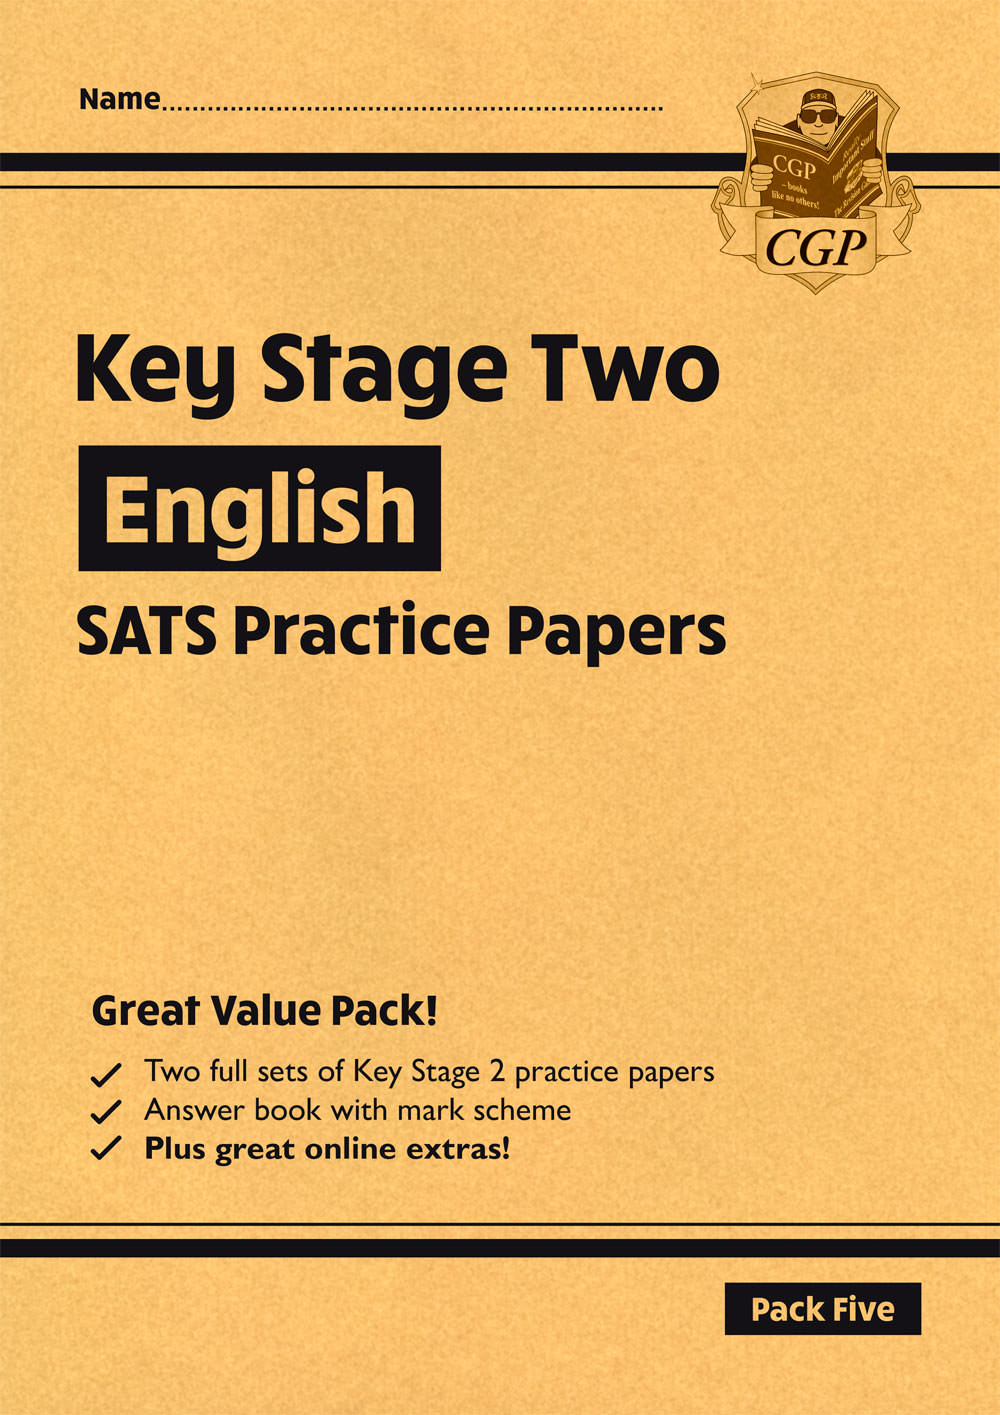 EHP27 - New KS2 English SATS Practice Papers: Pack 5 (with free Online Extras)